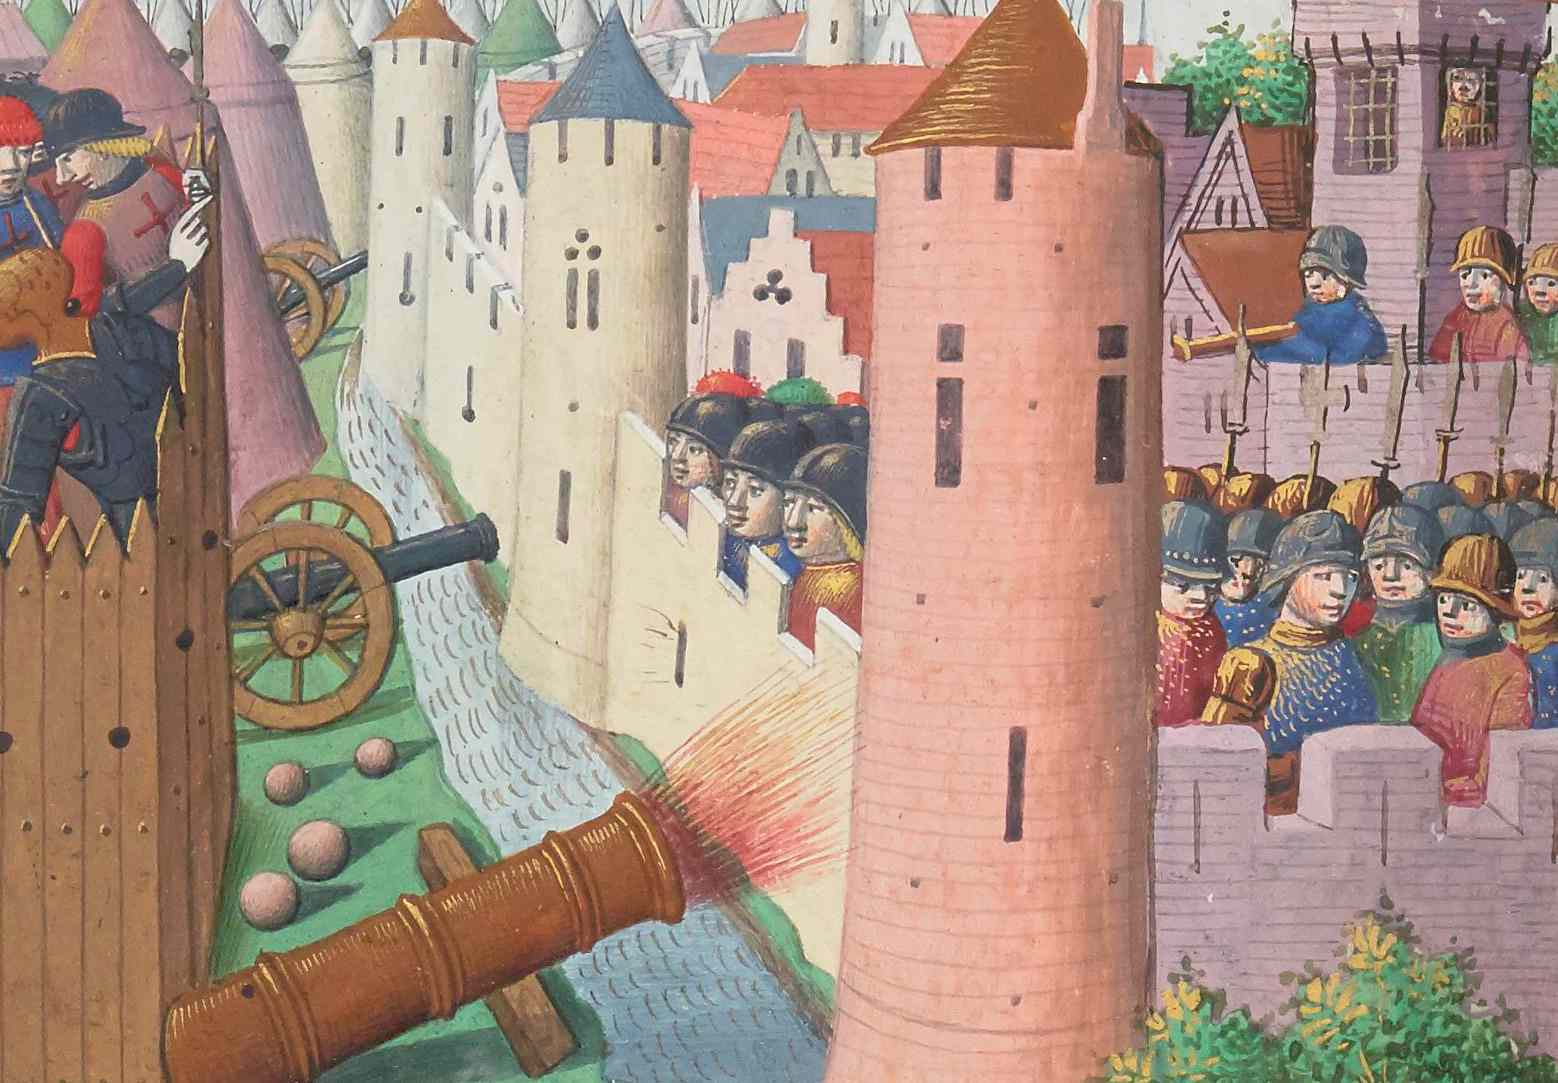 Medieval drawin of wooden fort across the city walls with the Earl of Salisbury being wounded.